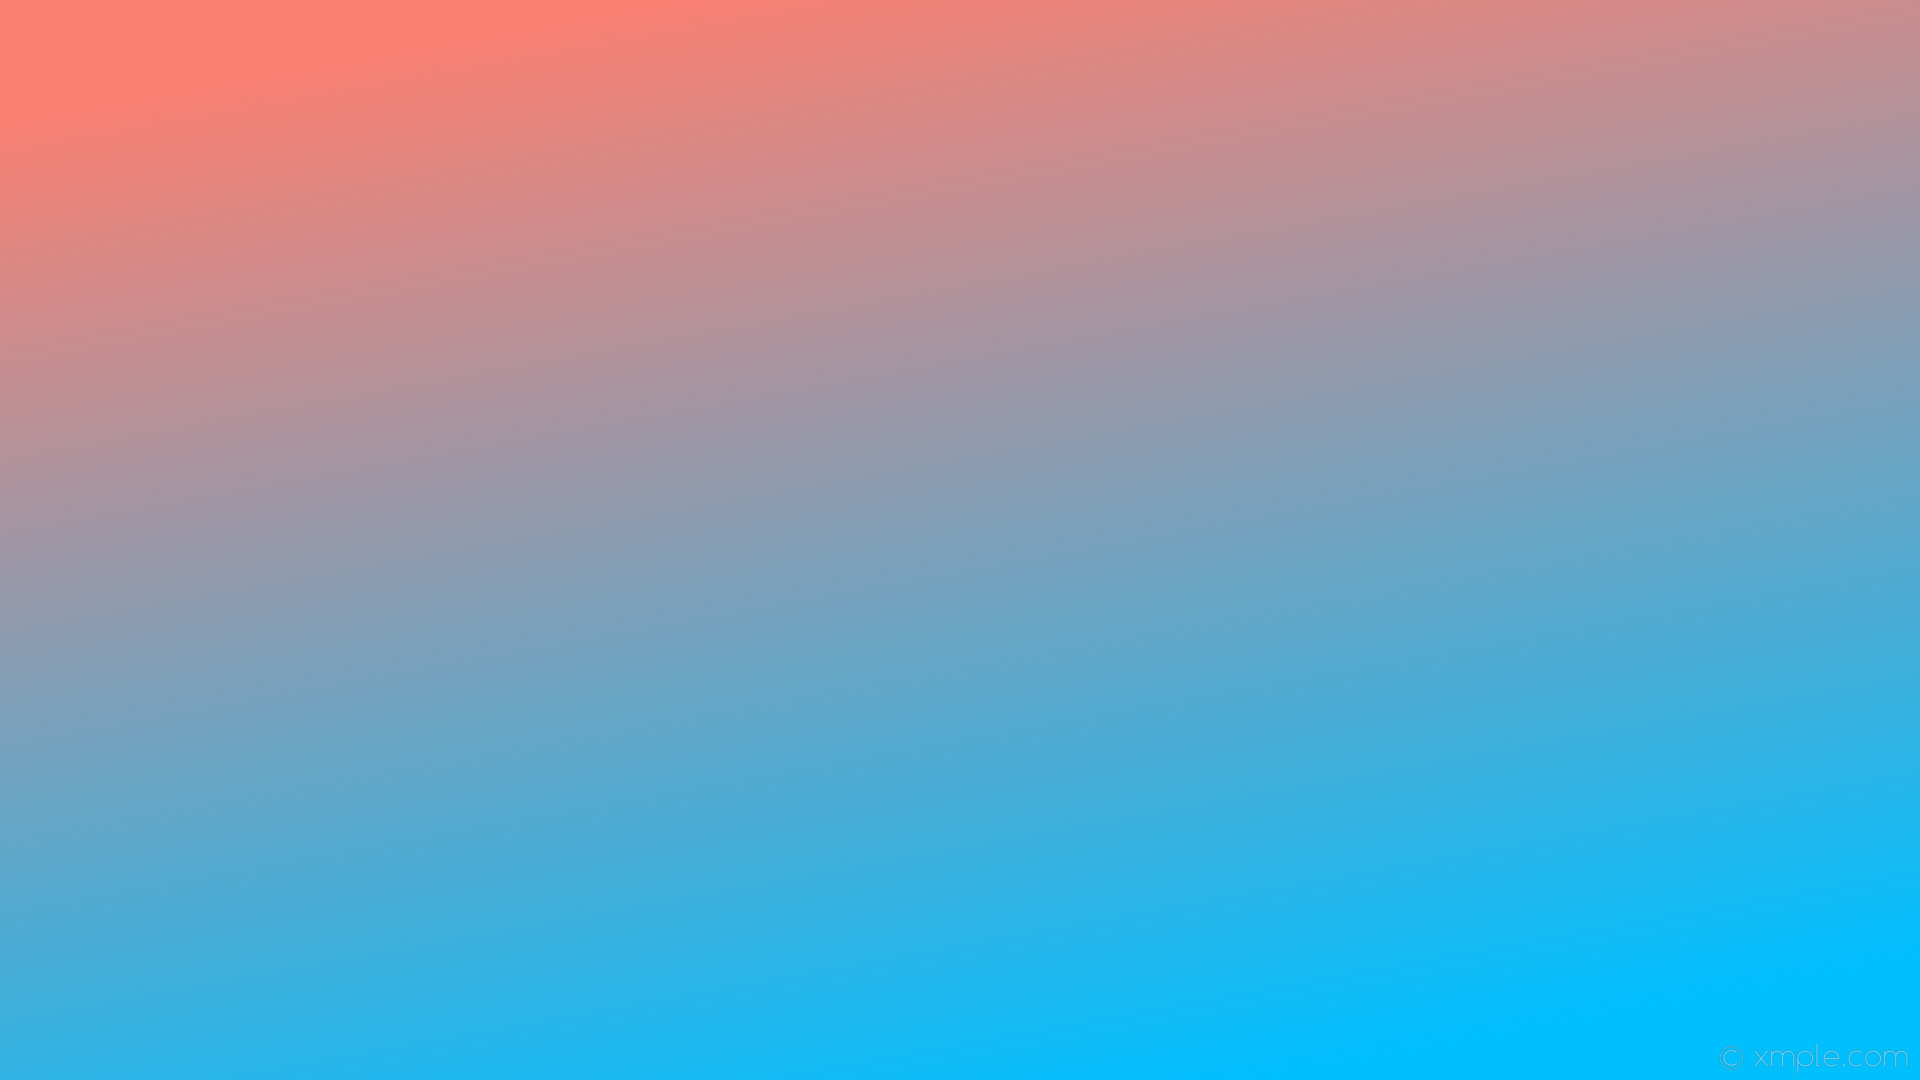 Res: 1920x1080, wallpaper red linear blue gradient salmon deep sky blue #fa8072 #00bfff 120°